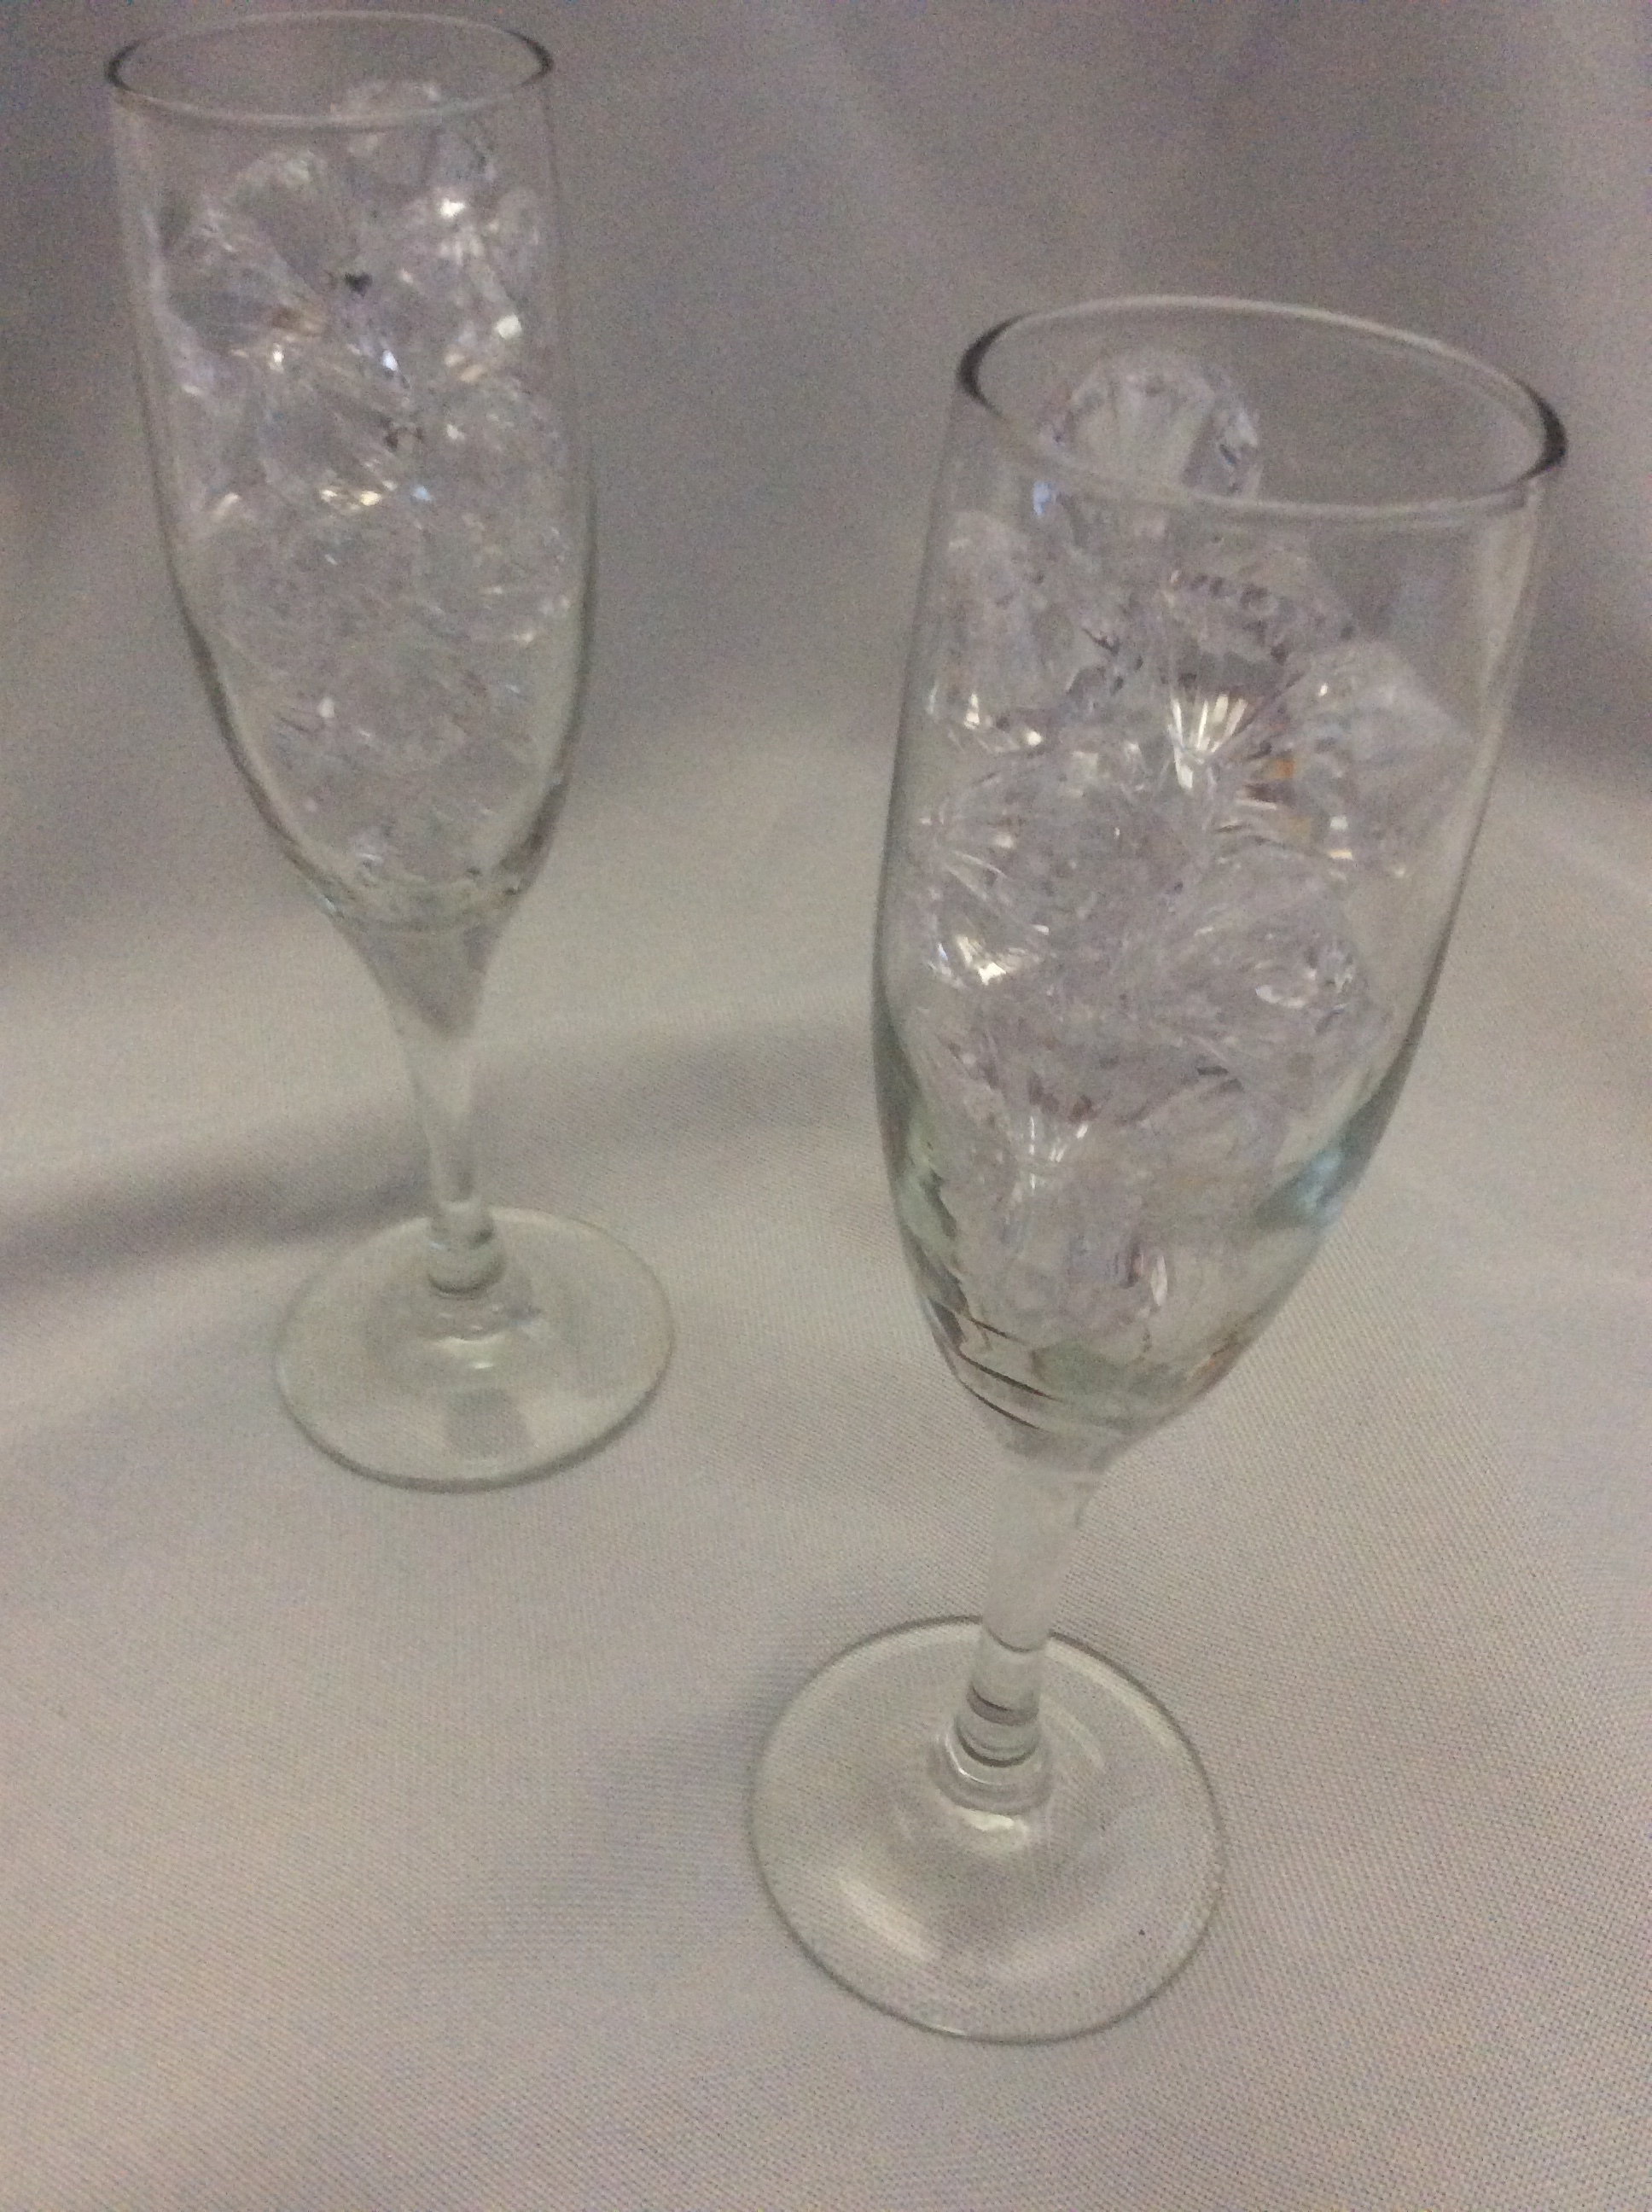 Champagne Flutes  - Rental $1.00 each - 20 available